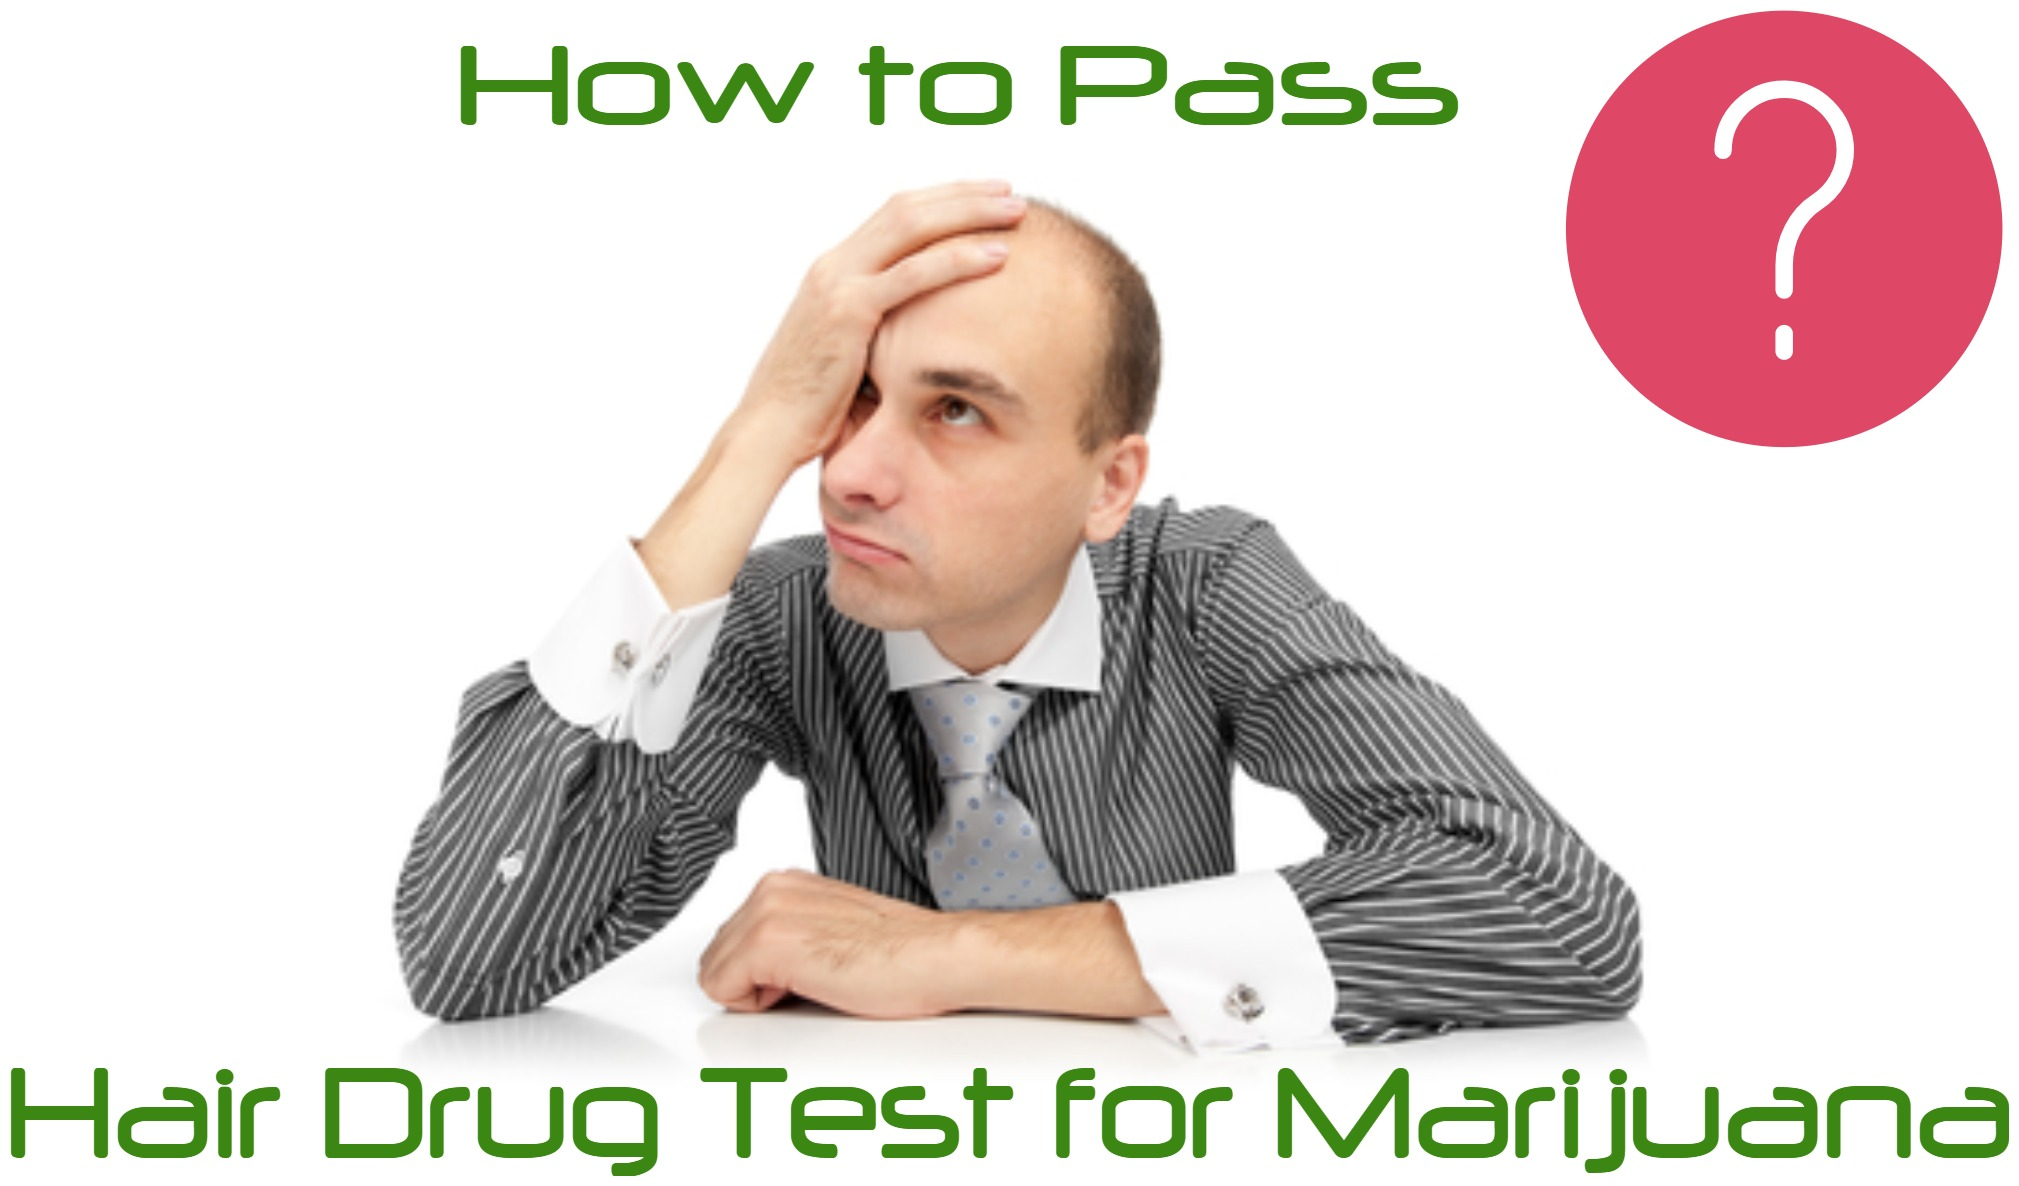 3 best methods how to pass a hair drug test for marijuana in 2018 how to pass a hair drug test for marijuana has been one of the most popular questions that we have received from many users facing this reality over the solutioingenieria Gallery